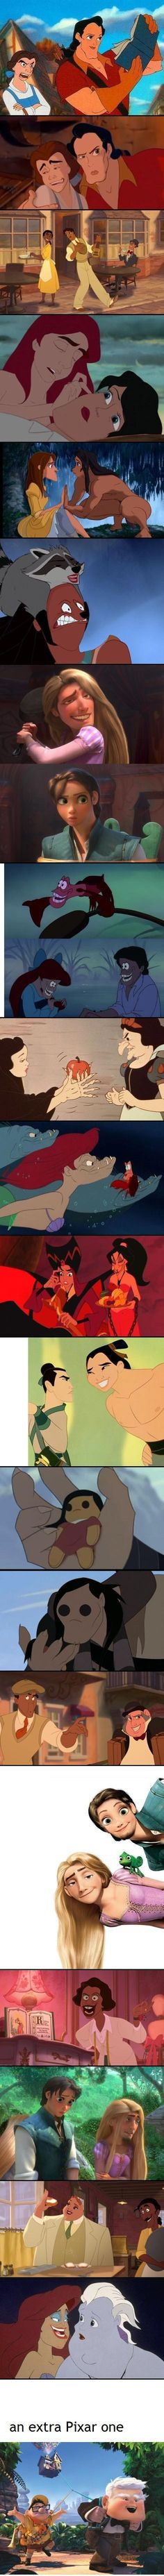 Disney face swaps. Posted on mashable.com (image credit lucygoose on imgur.com) by Neha Prakash.